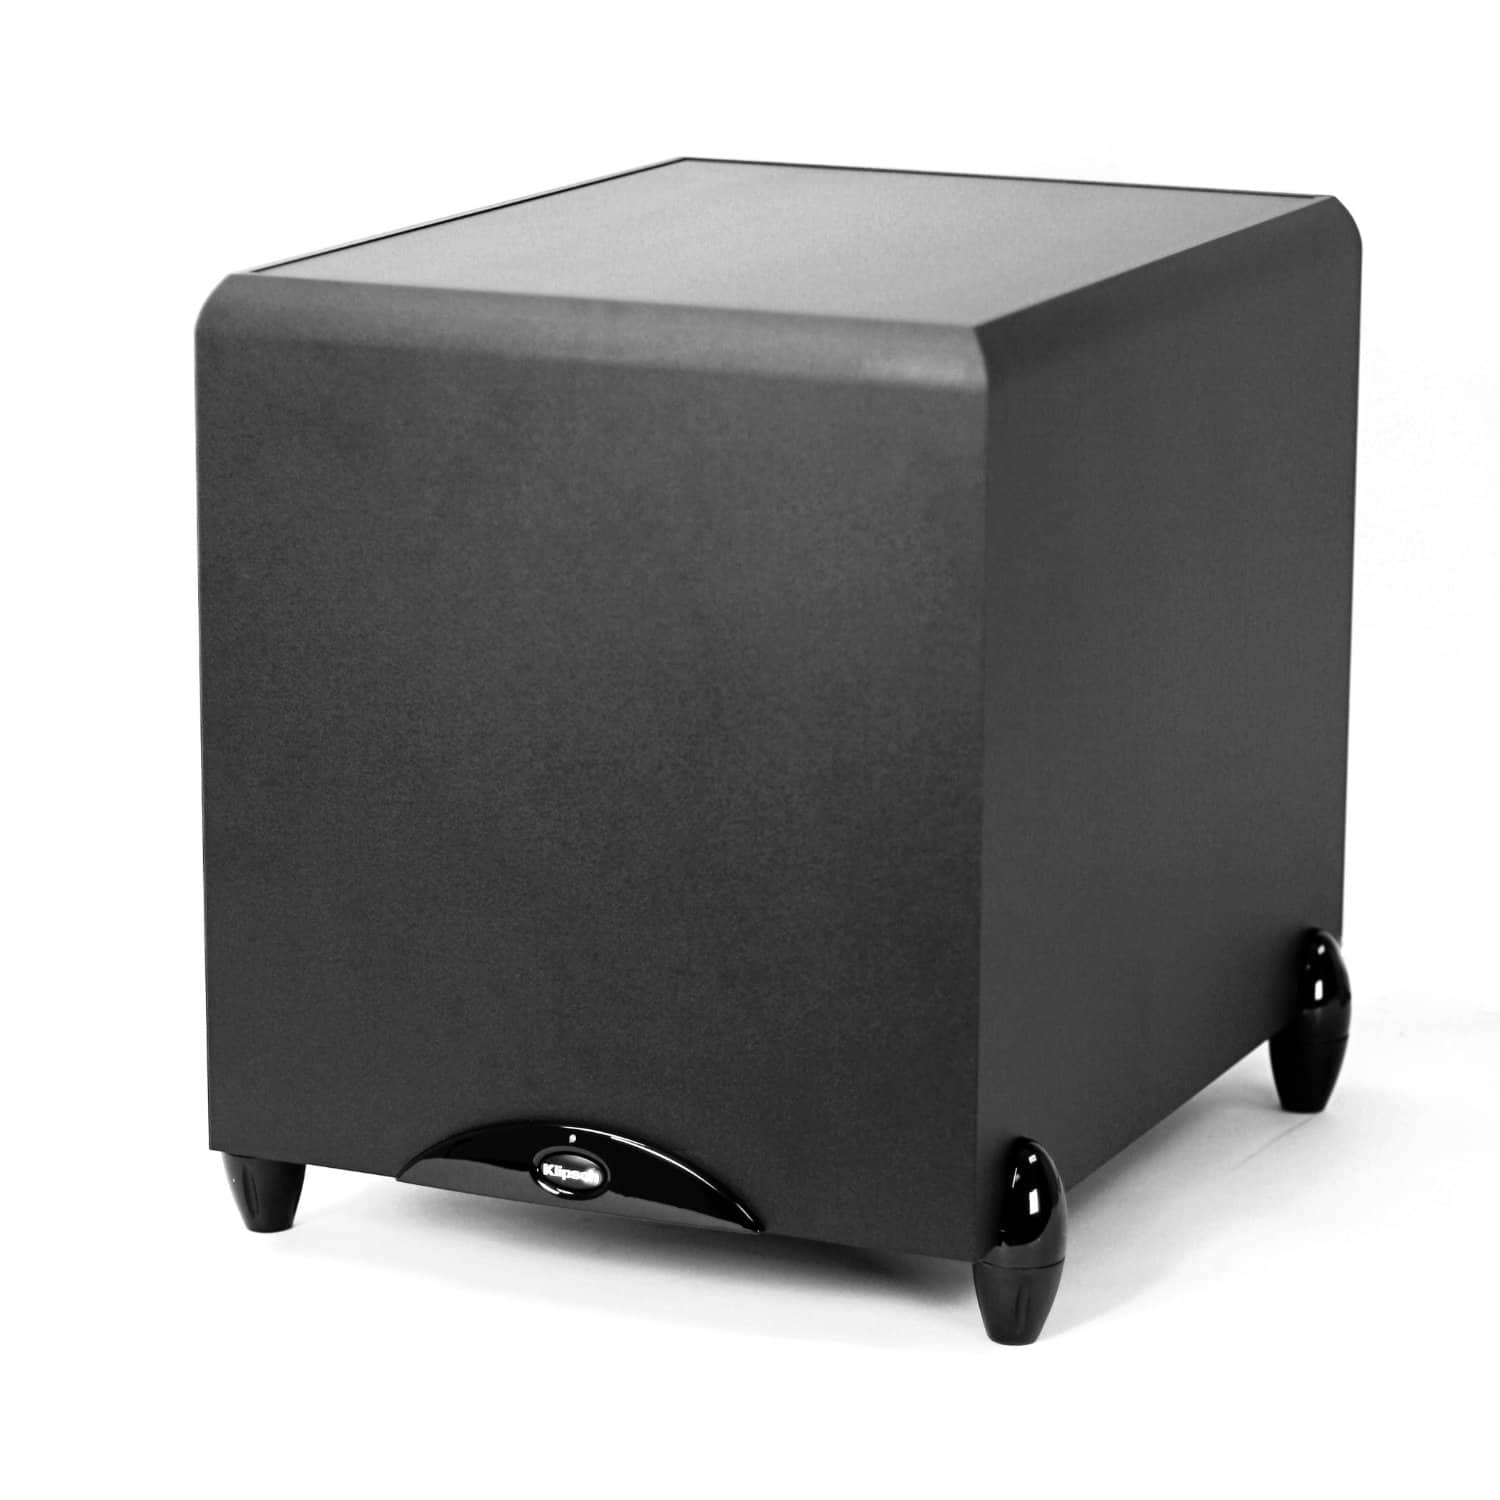 "Klipsch Synergy Sub-12HG 12"" 300W Subwoofer $169 + Free Shipping"